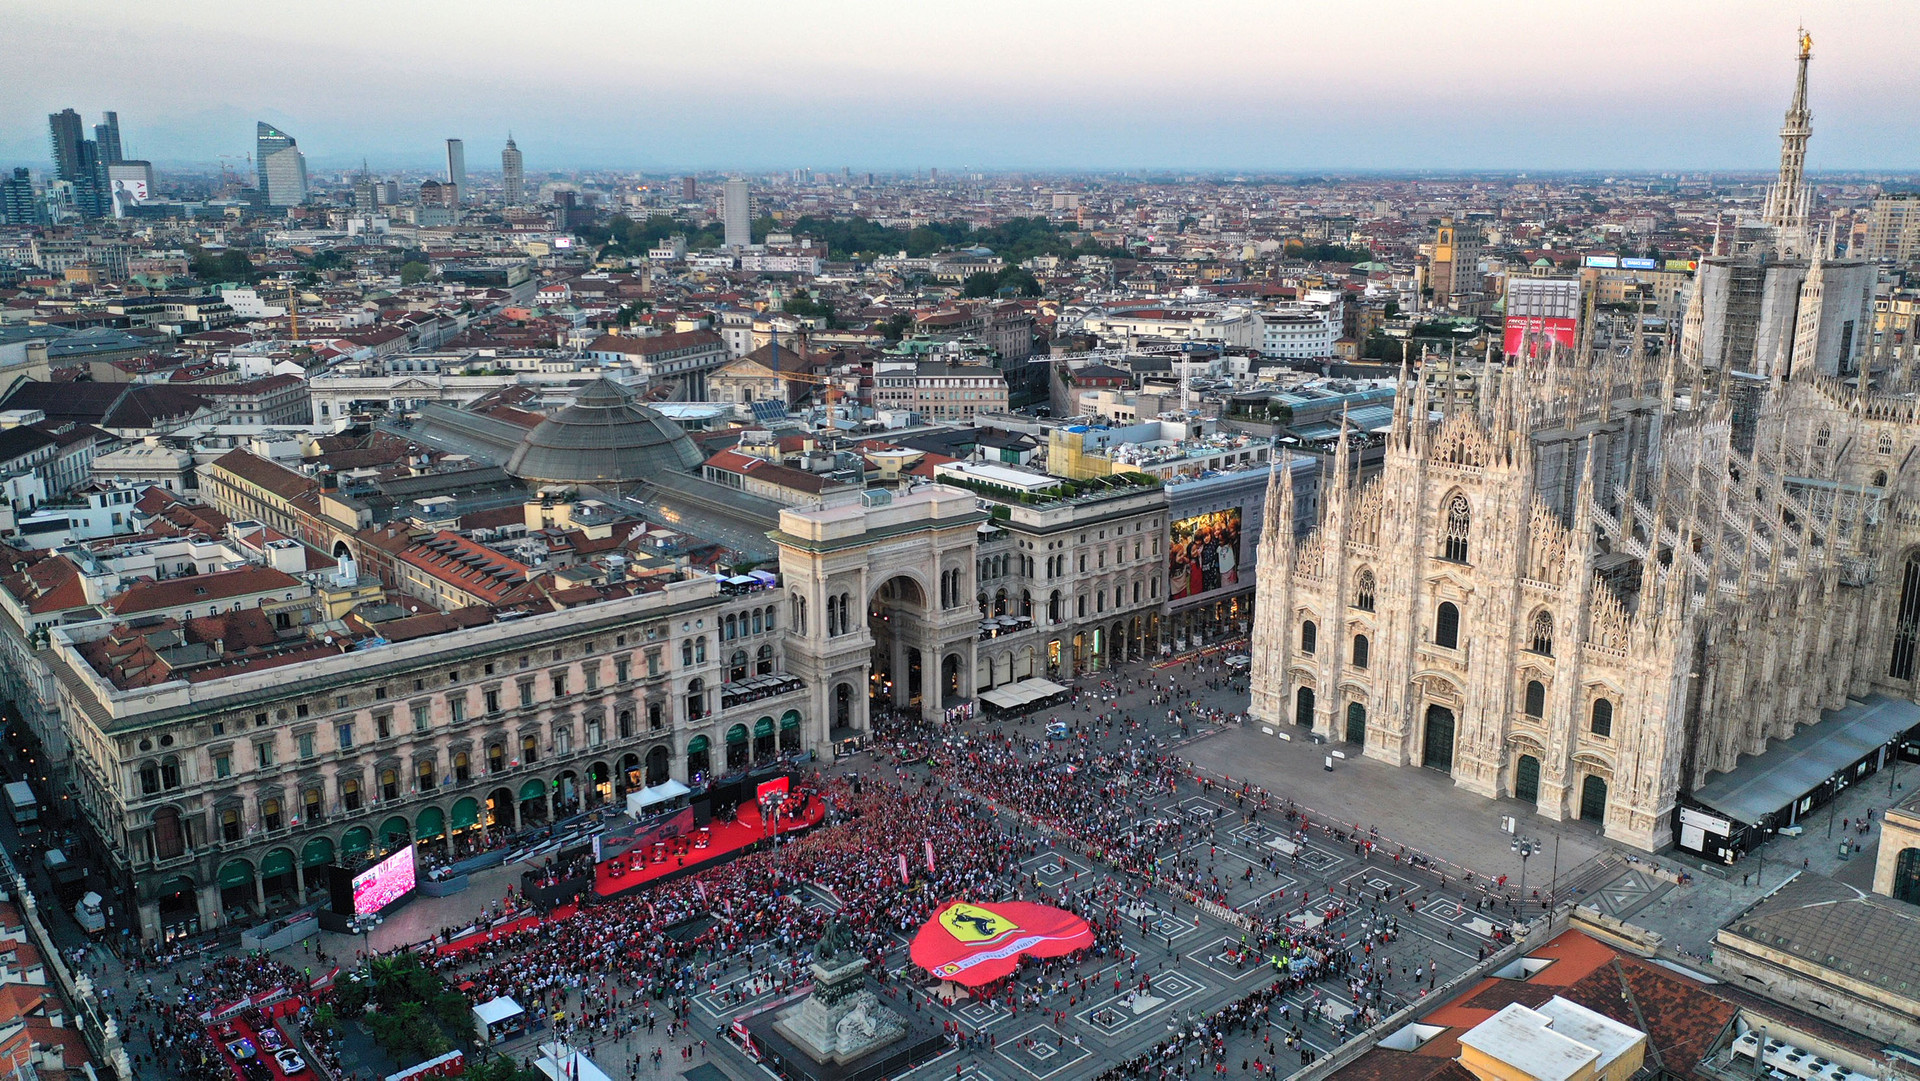 2019 Ferrari 90 Years celebration at Milan | 4 Sept 2019 website 23.jpg